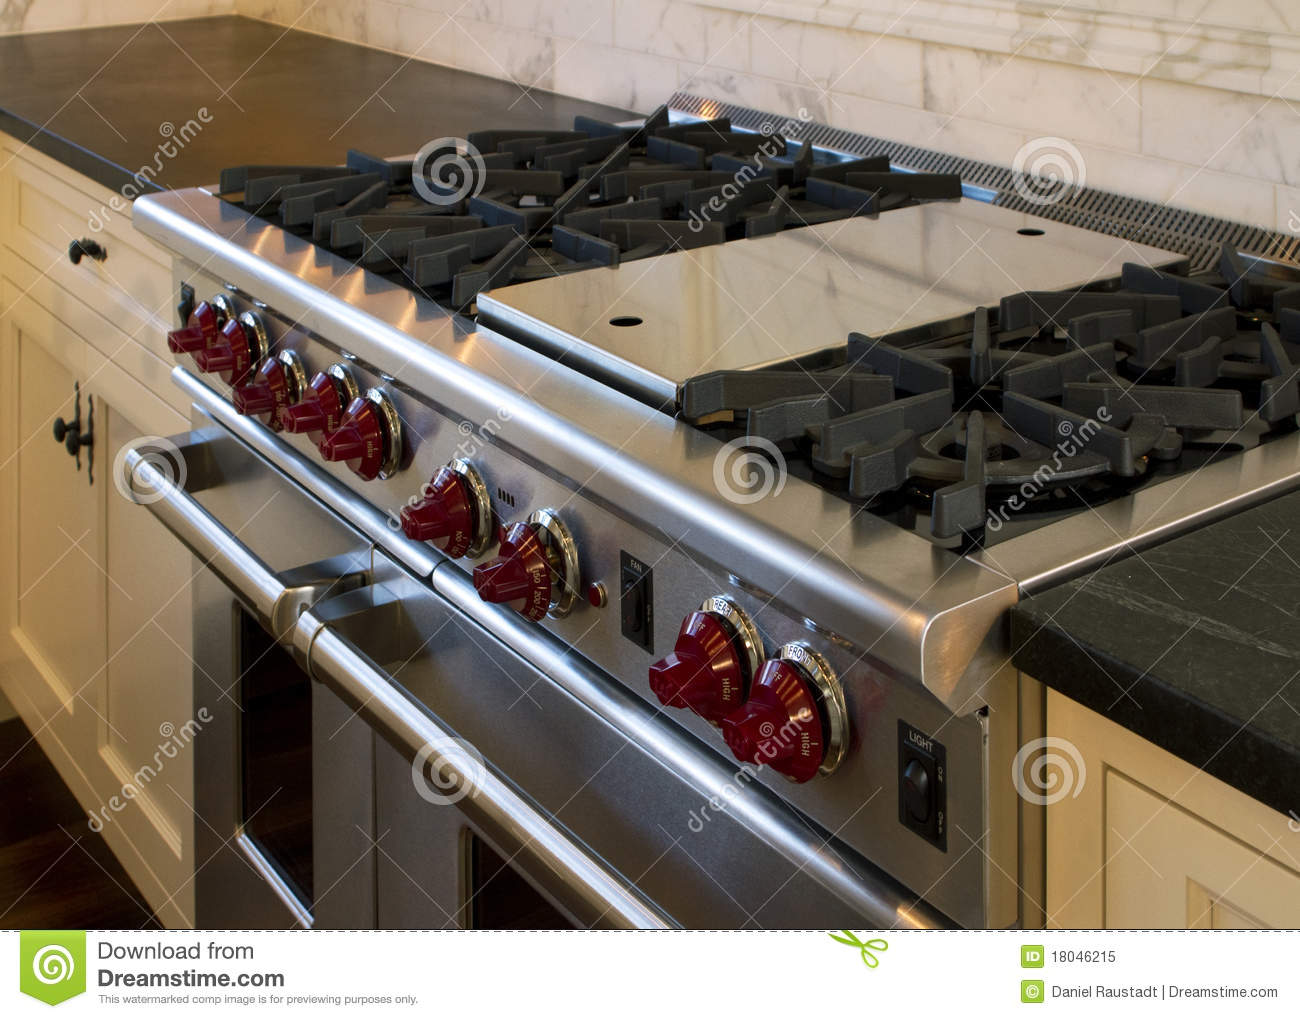 Cottage Style Kitchen Gas Cooking Range Stock Image - Image: 18046215